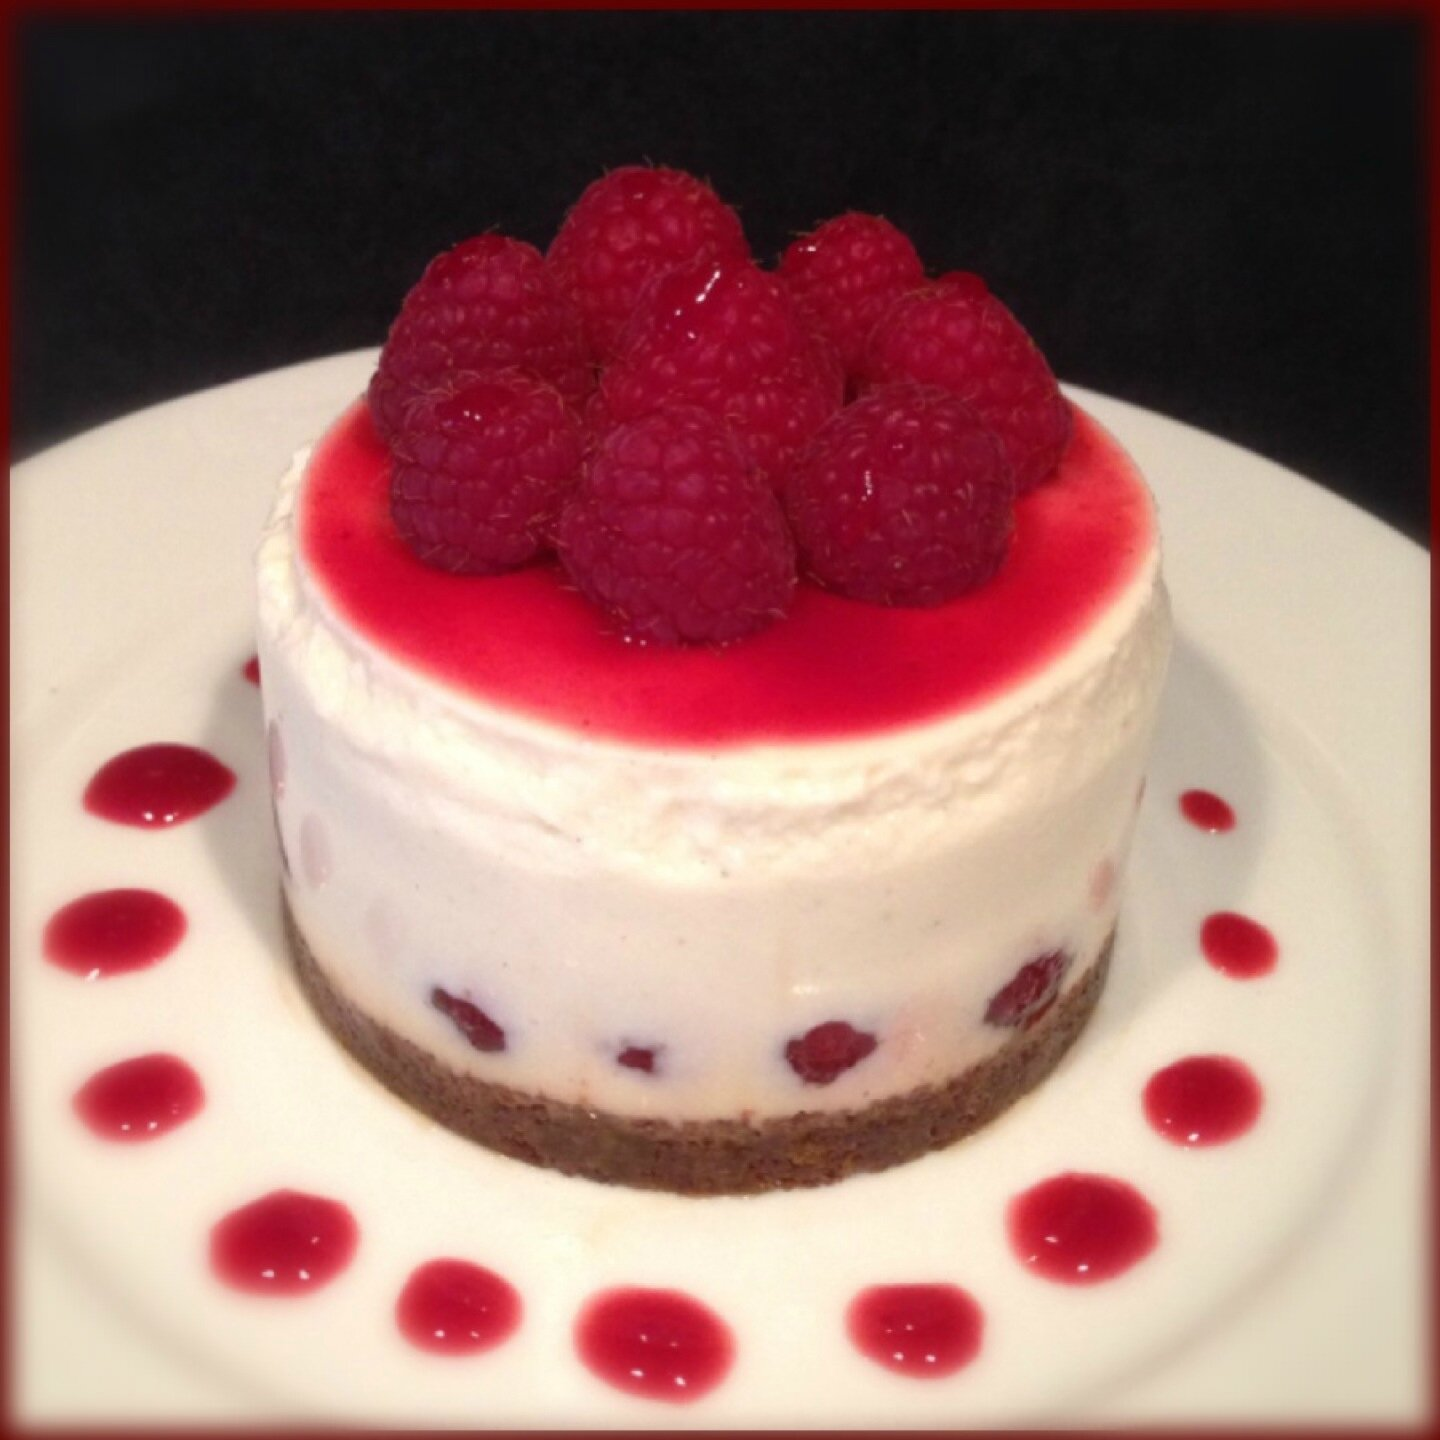 Cheesecake aux framboises sans cuisson cook 39 s dream - Cheesecake speculoos sans cuisson ...